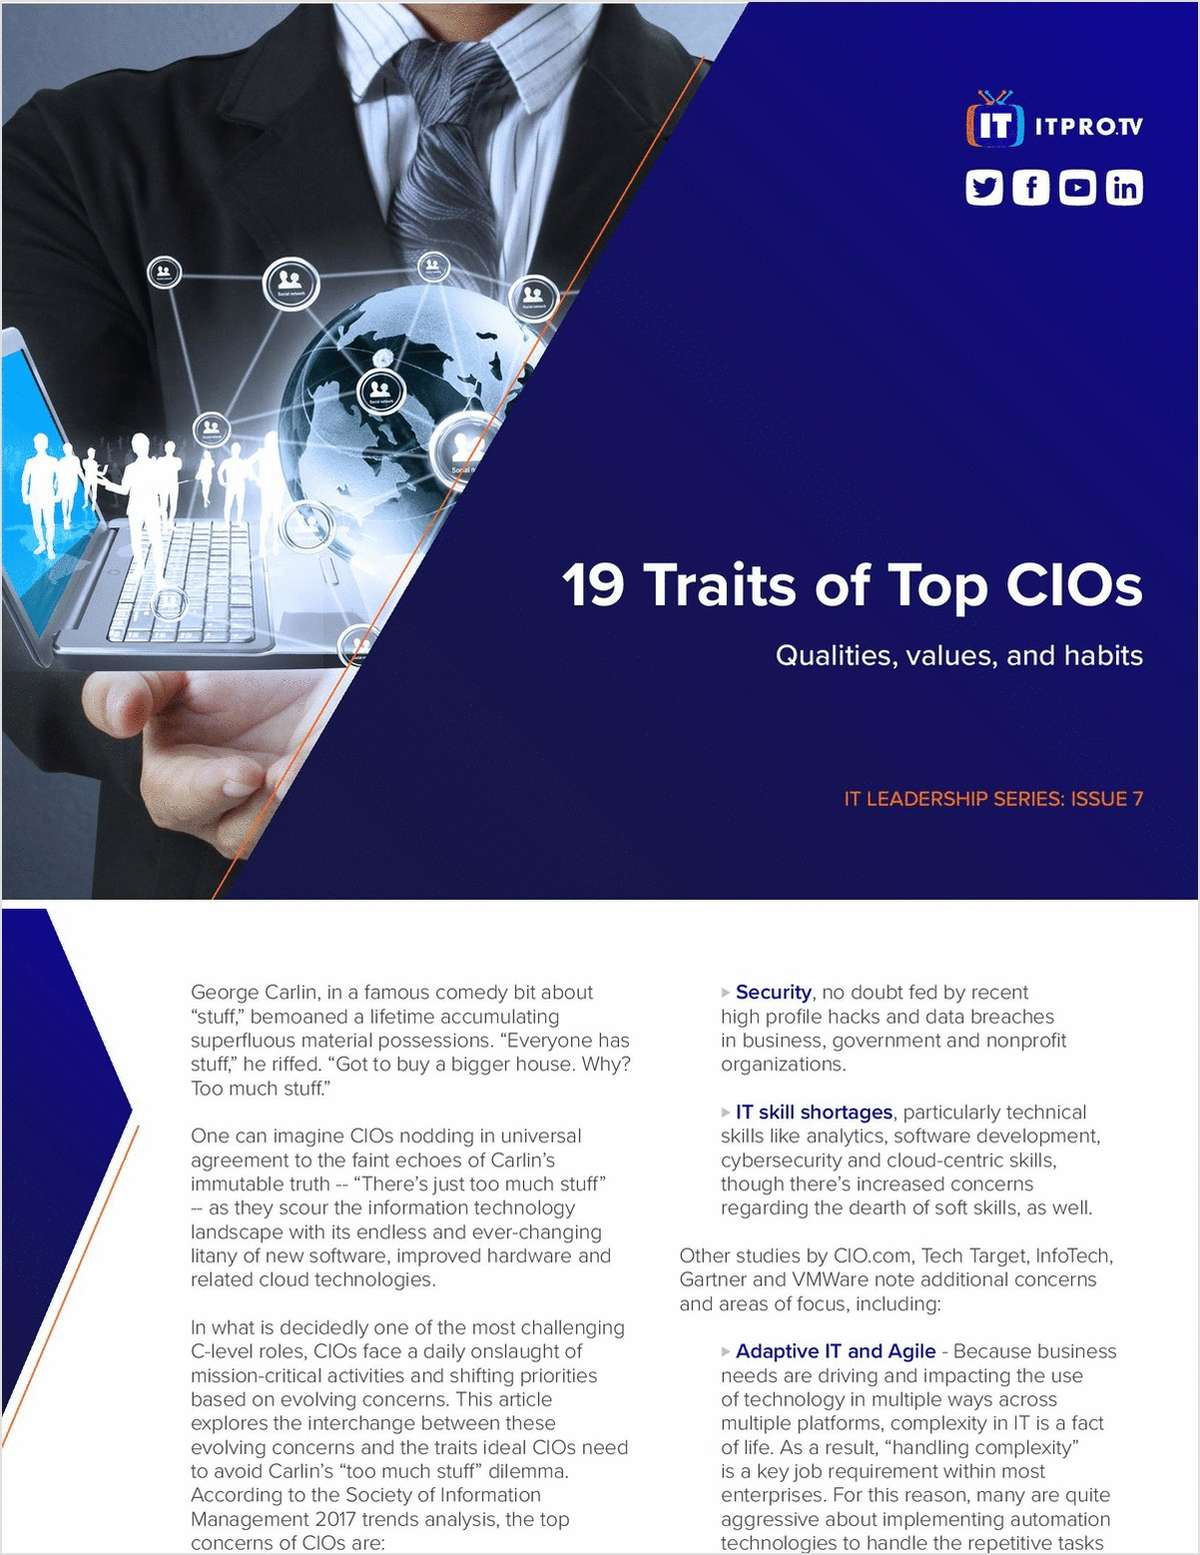 19 Traits of Top CIOs: Qualities, Values, and Habits